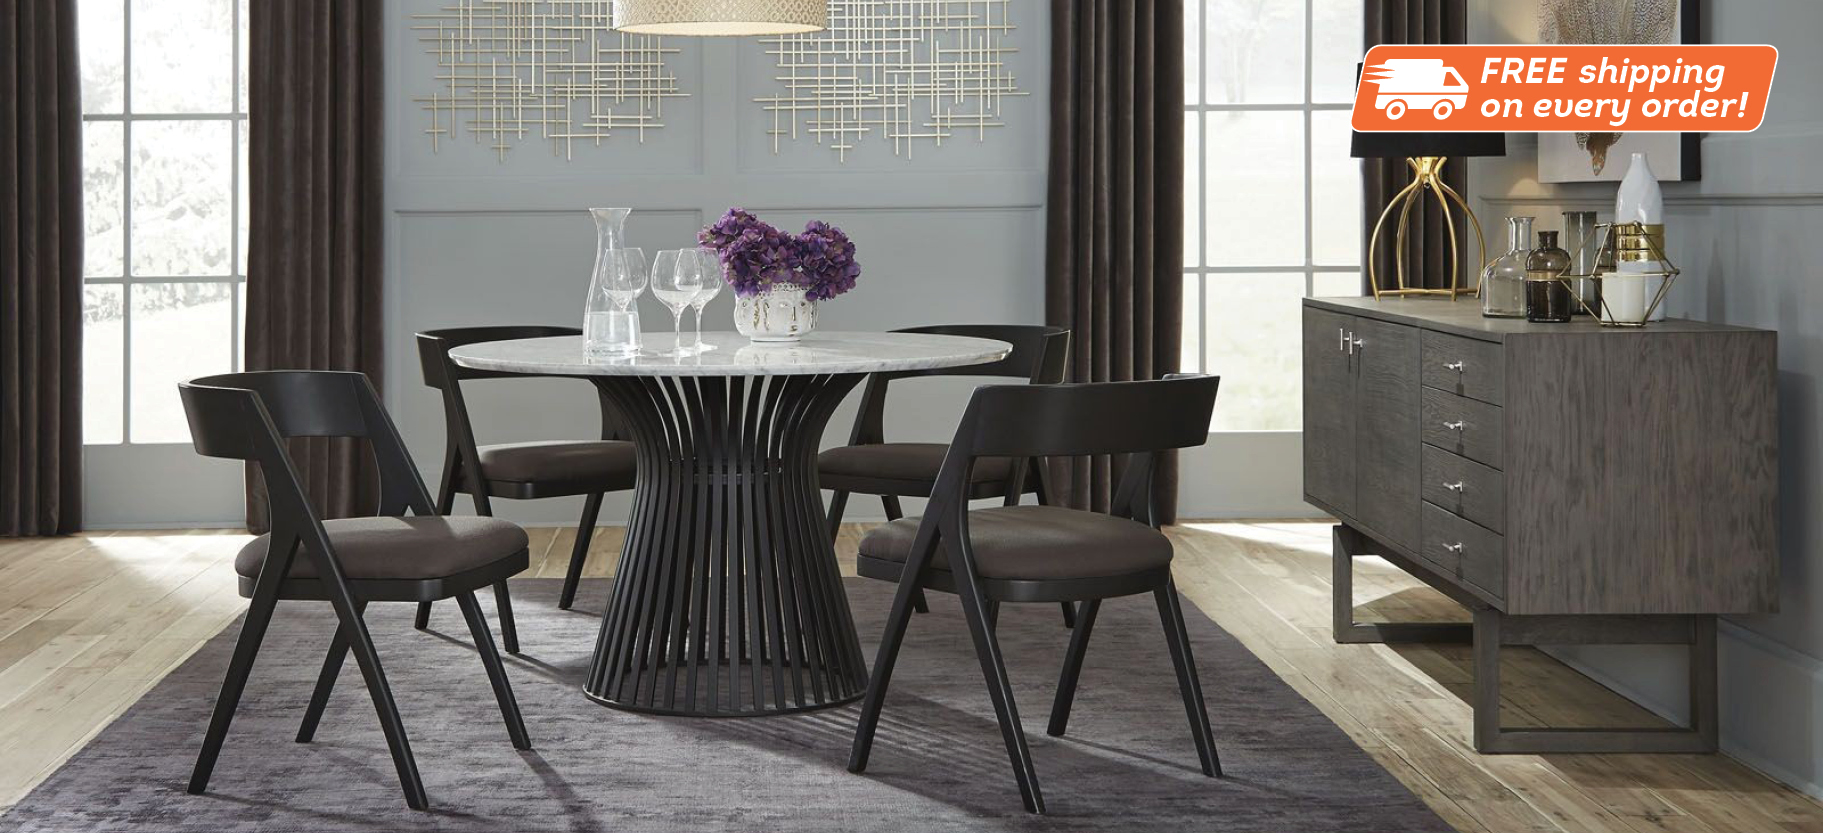 Room Furniture Dining Room Furniture Coleman Furniture